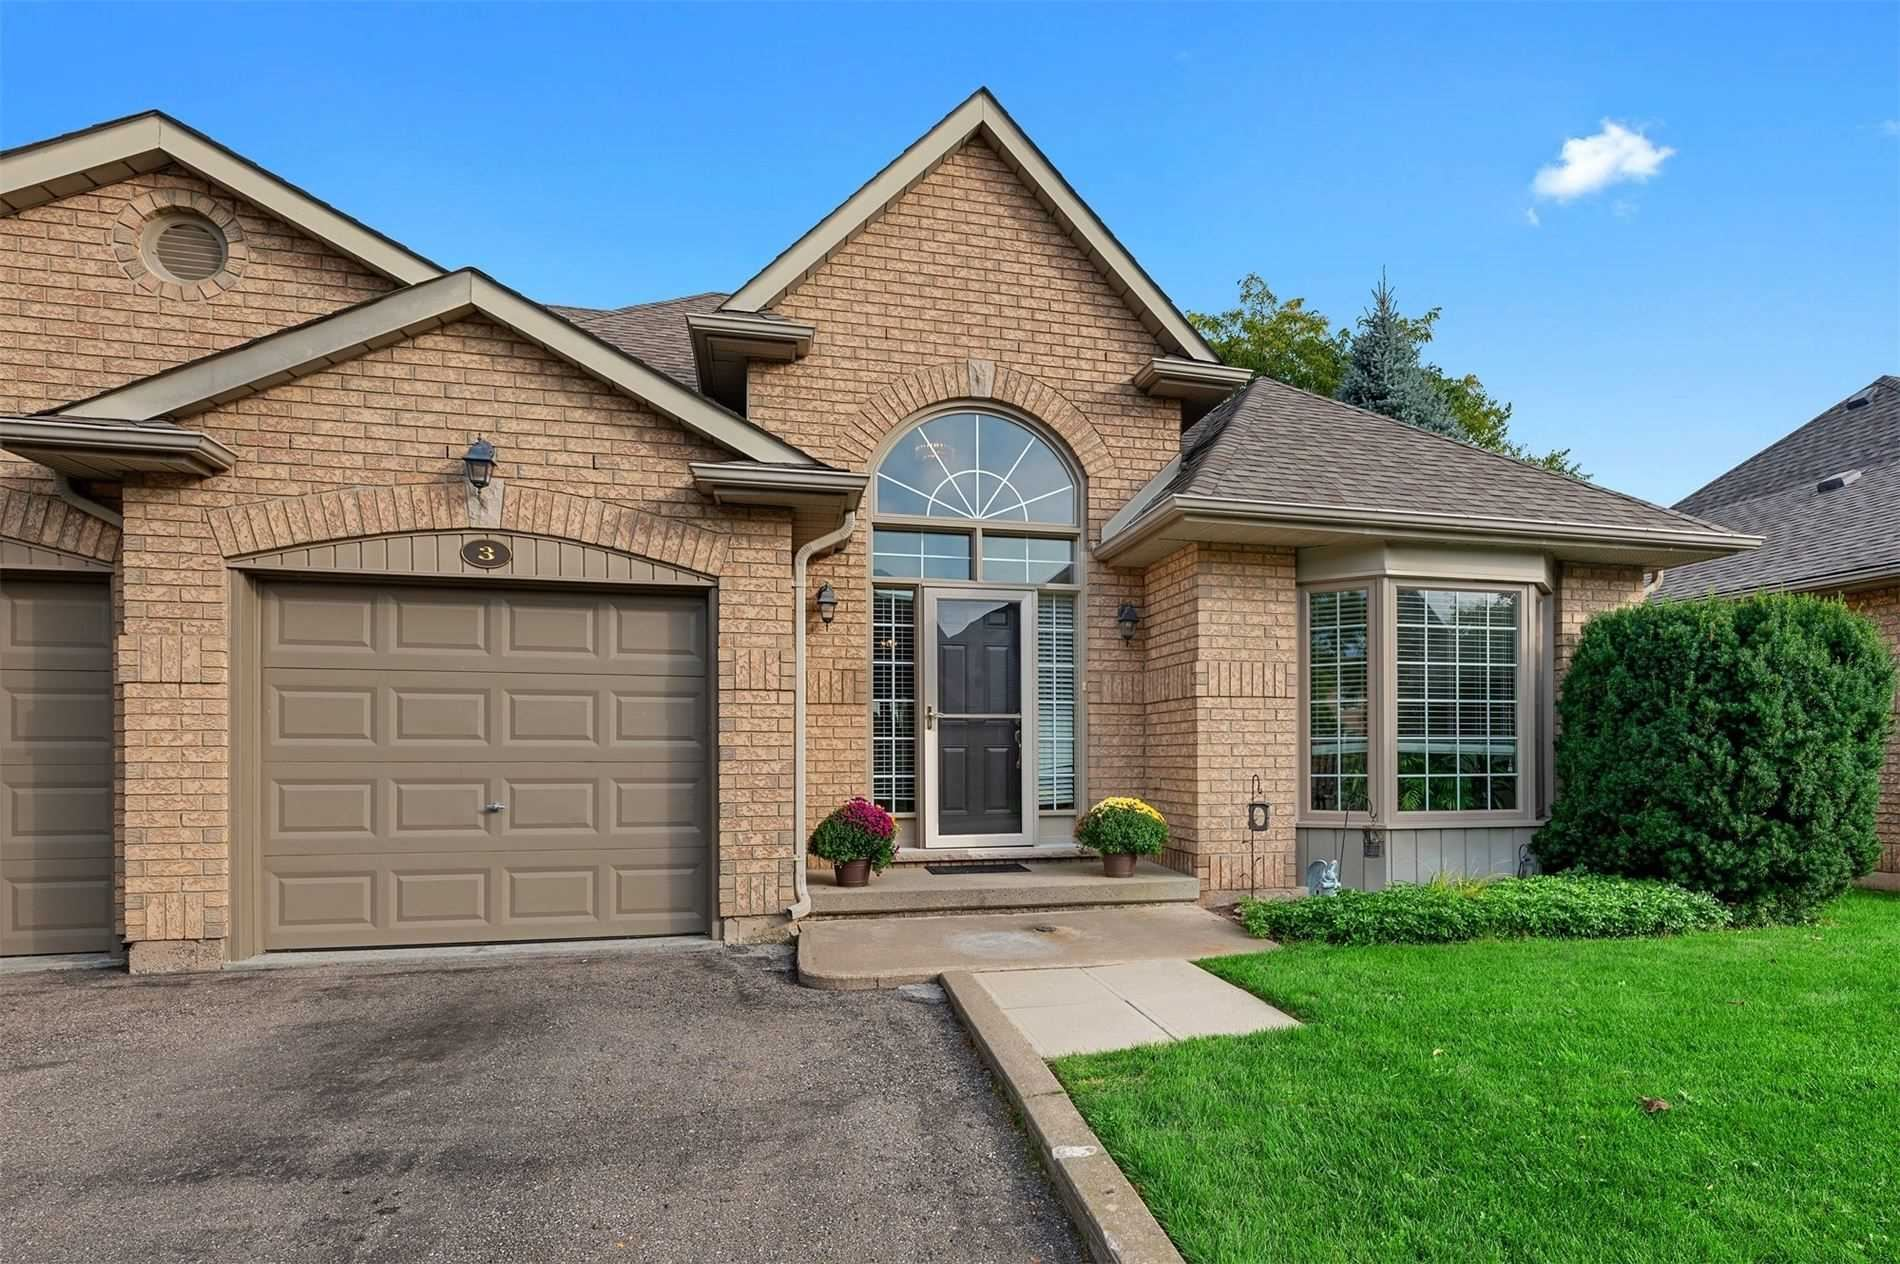 26 Red Haven Dr #3, Grimsby, ON L3M 5K2 - MLS#: X5402604